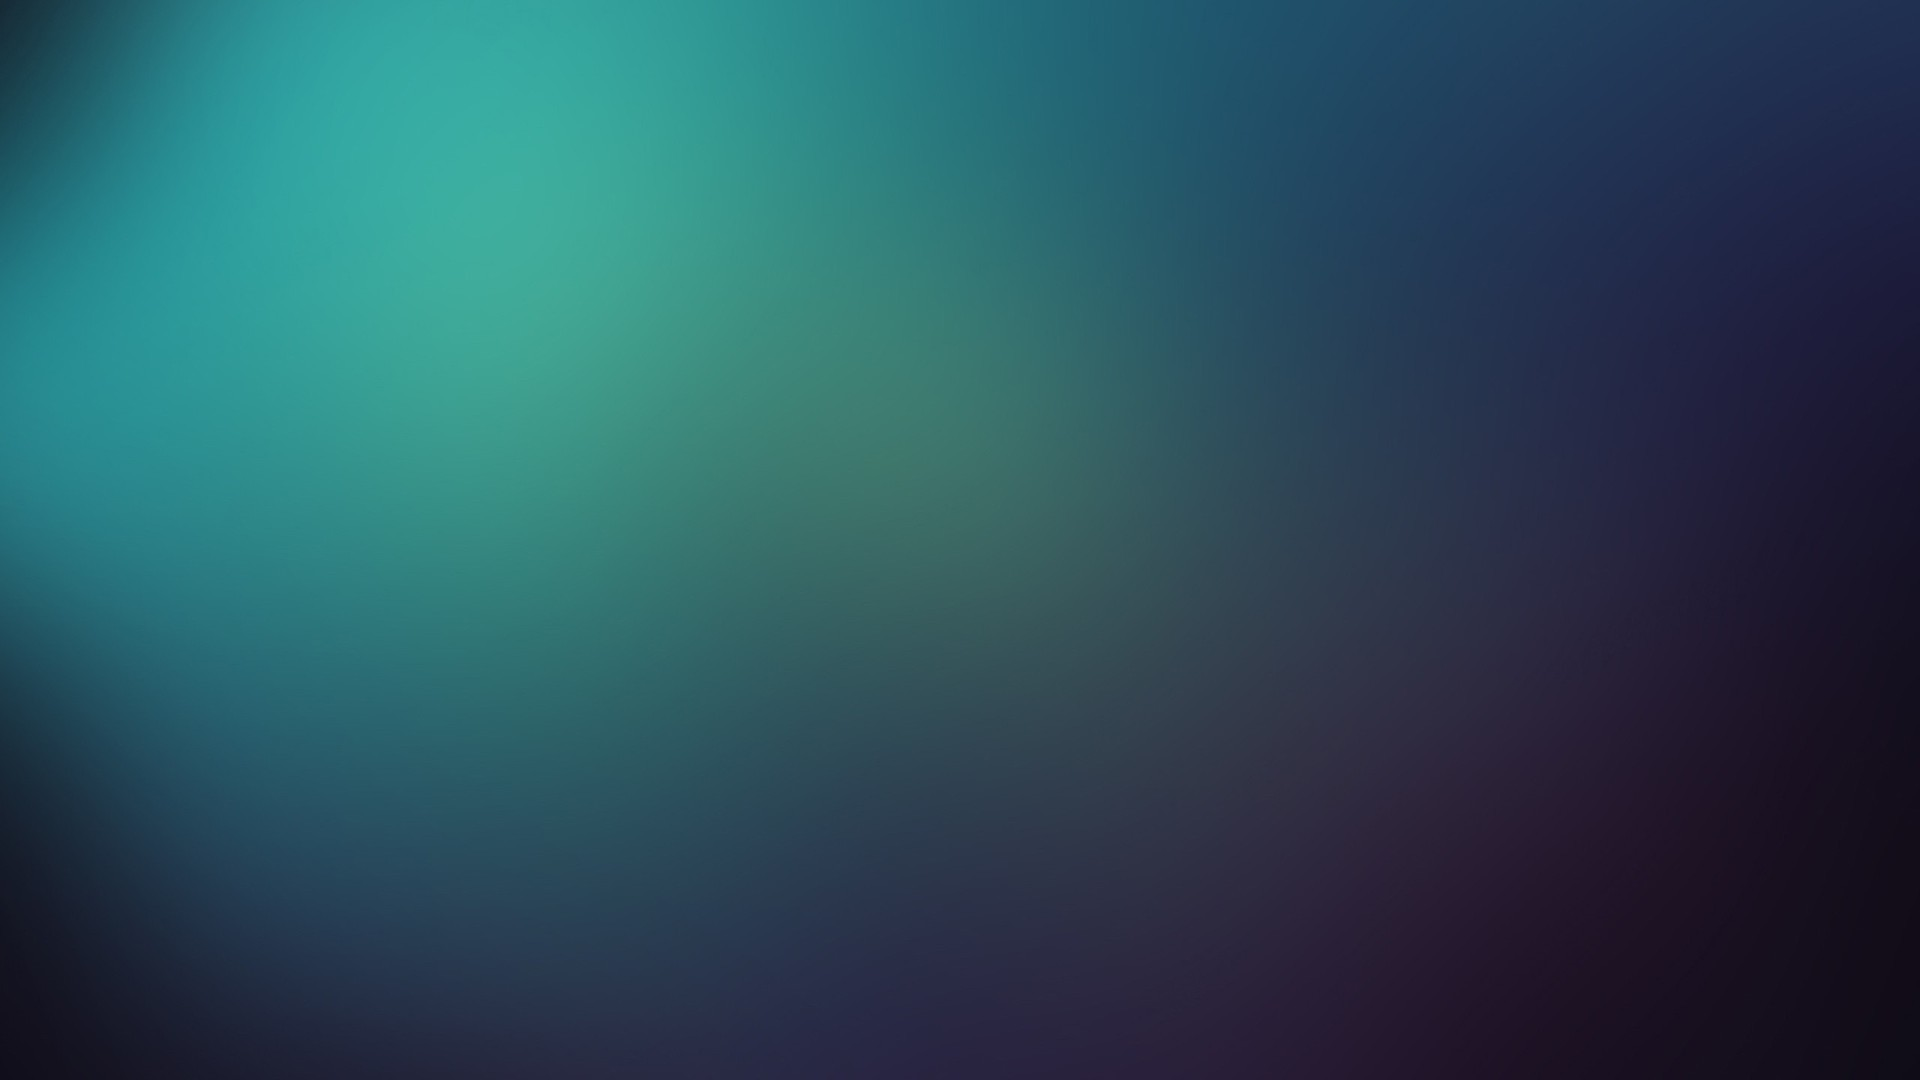 1920x1080 Blue gradient HD Wallpaper  Blue ...